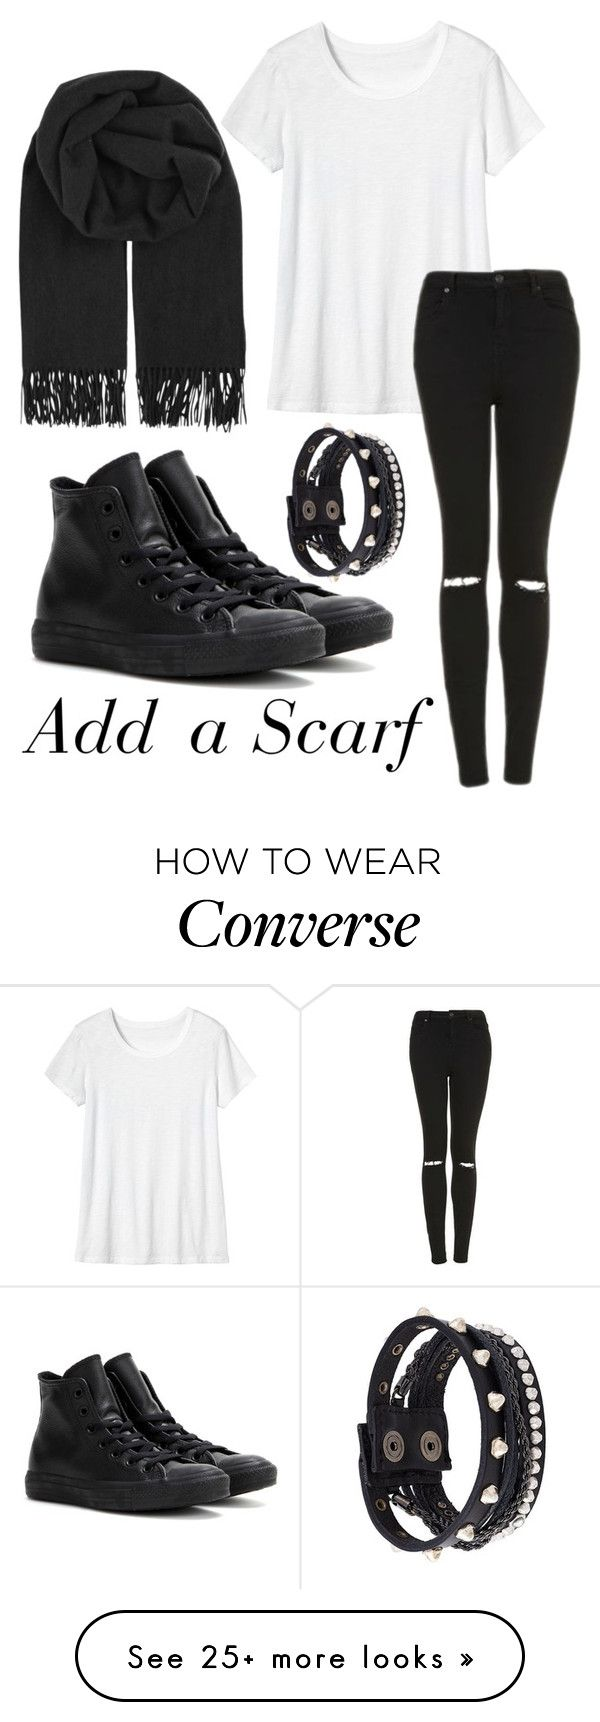 """""""Add a Scarf"""" by andreeaaaaaaa on Polyvore featuring Toast, Topshop, BeckSöndergaard, Converse and Diesel"""